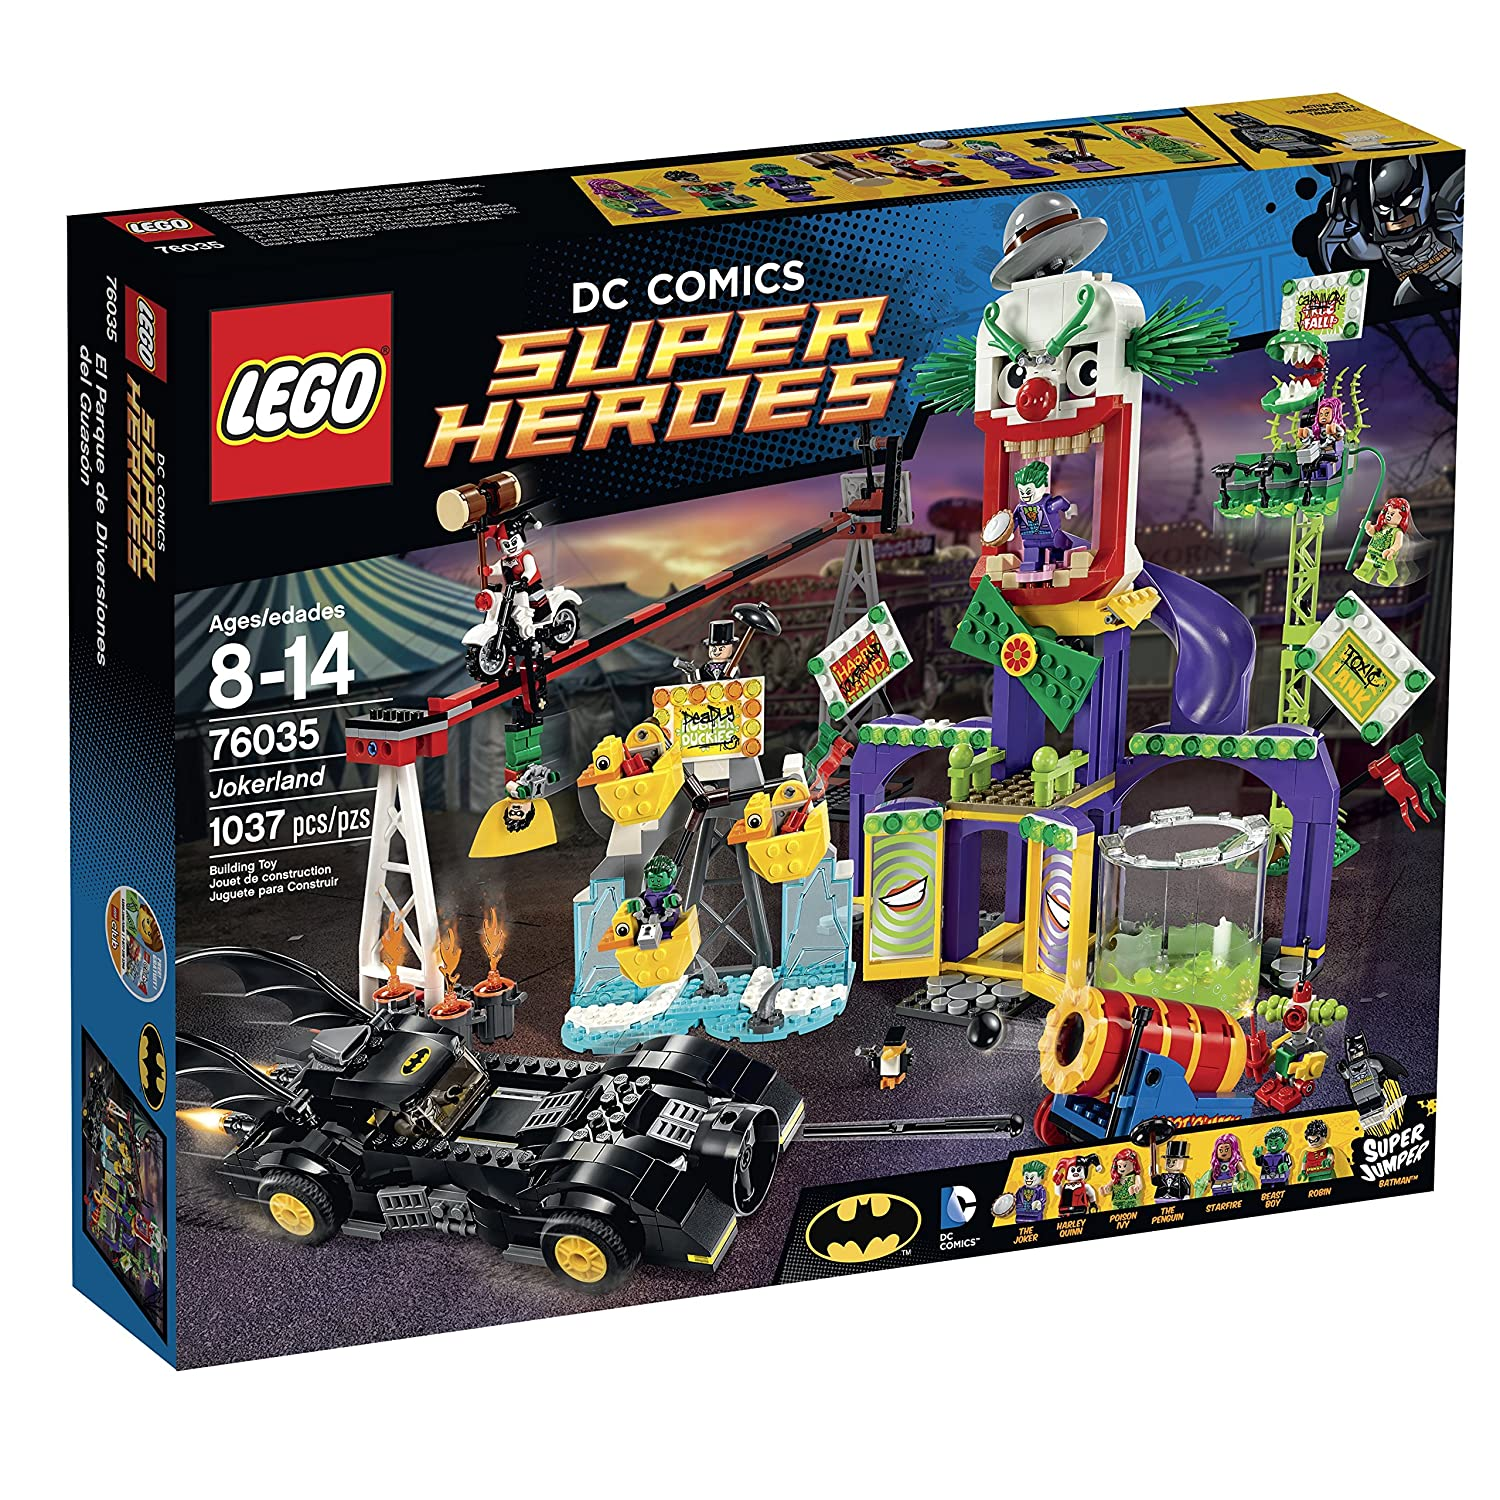 LEGO Super Heroes 76035 Jokerland Building Kit by Unknown